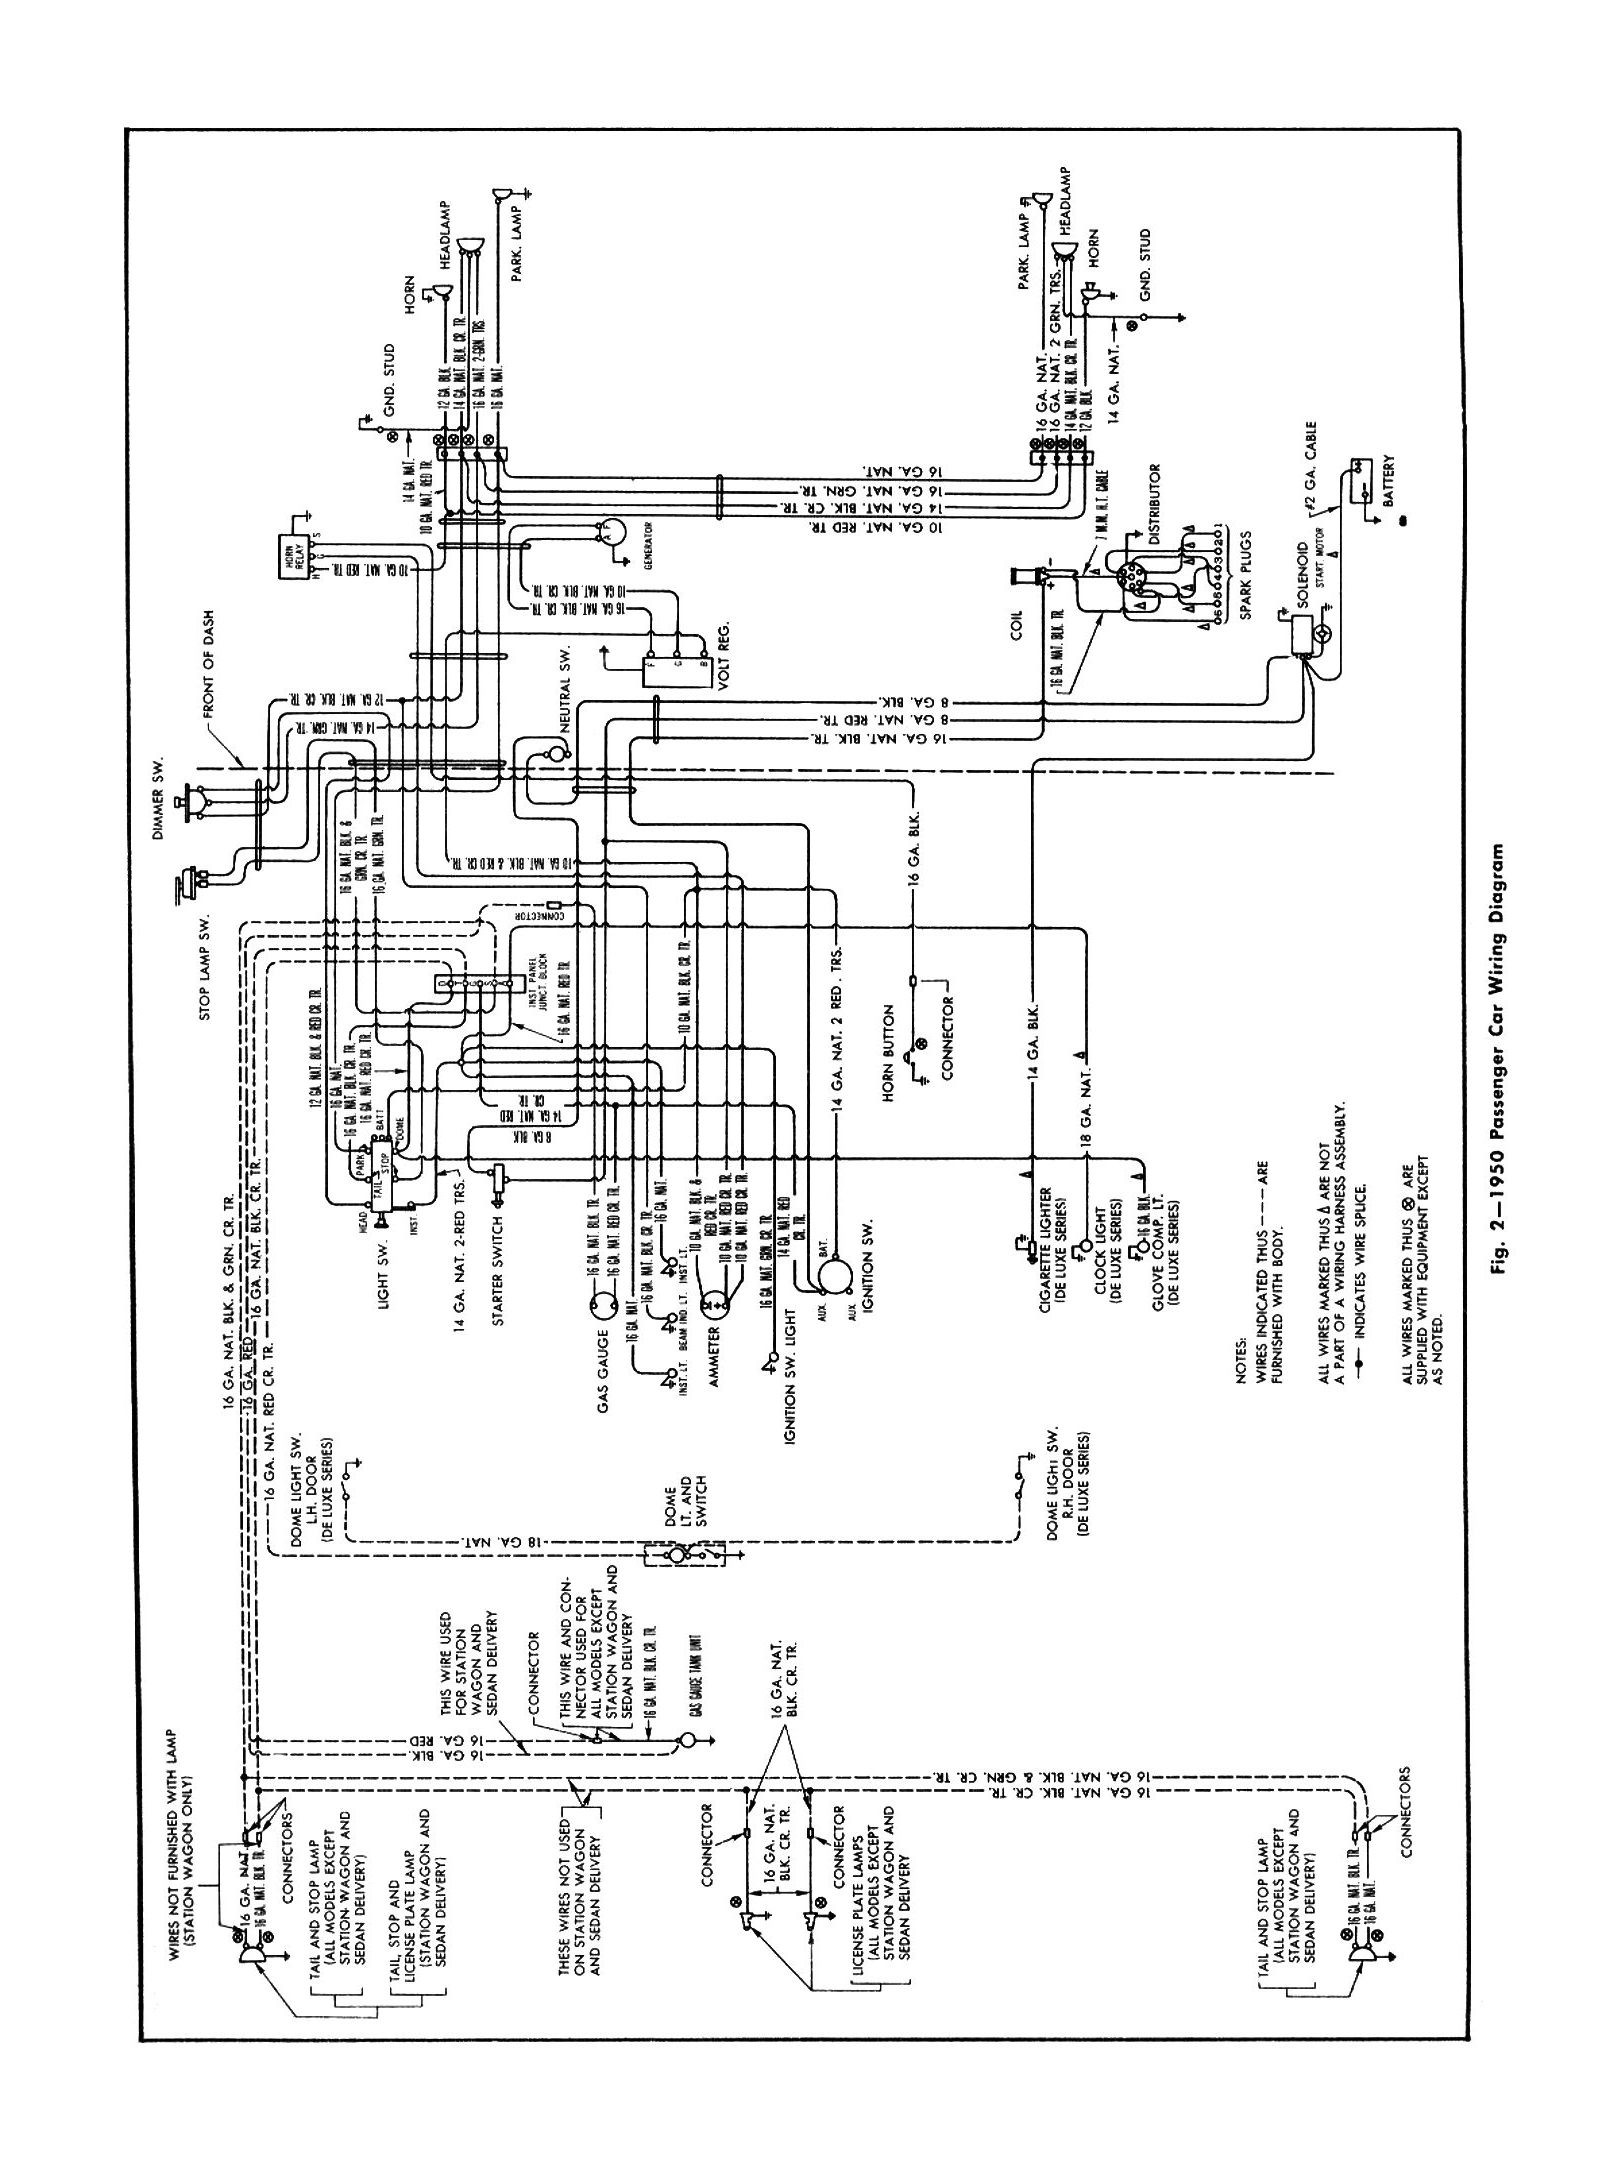 1952 Chevy Truck Turn Signal Wiring Diagram on 1996 buick roadmaster wiring diagram